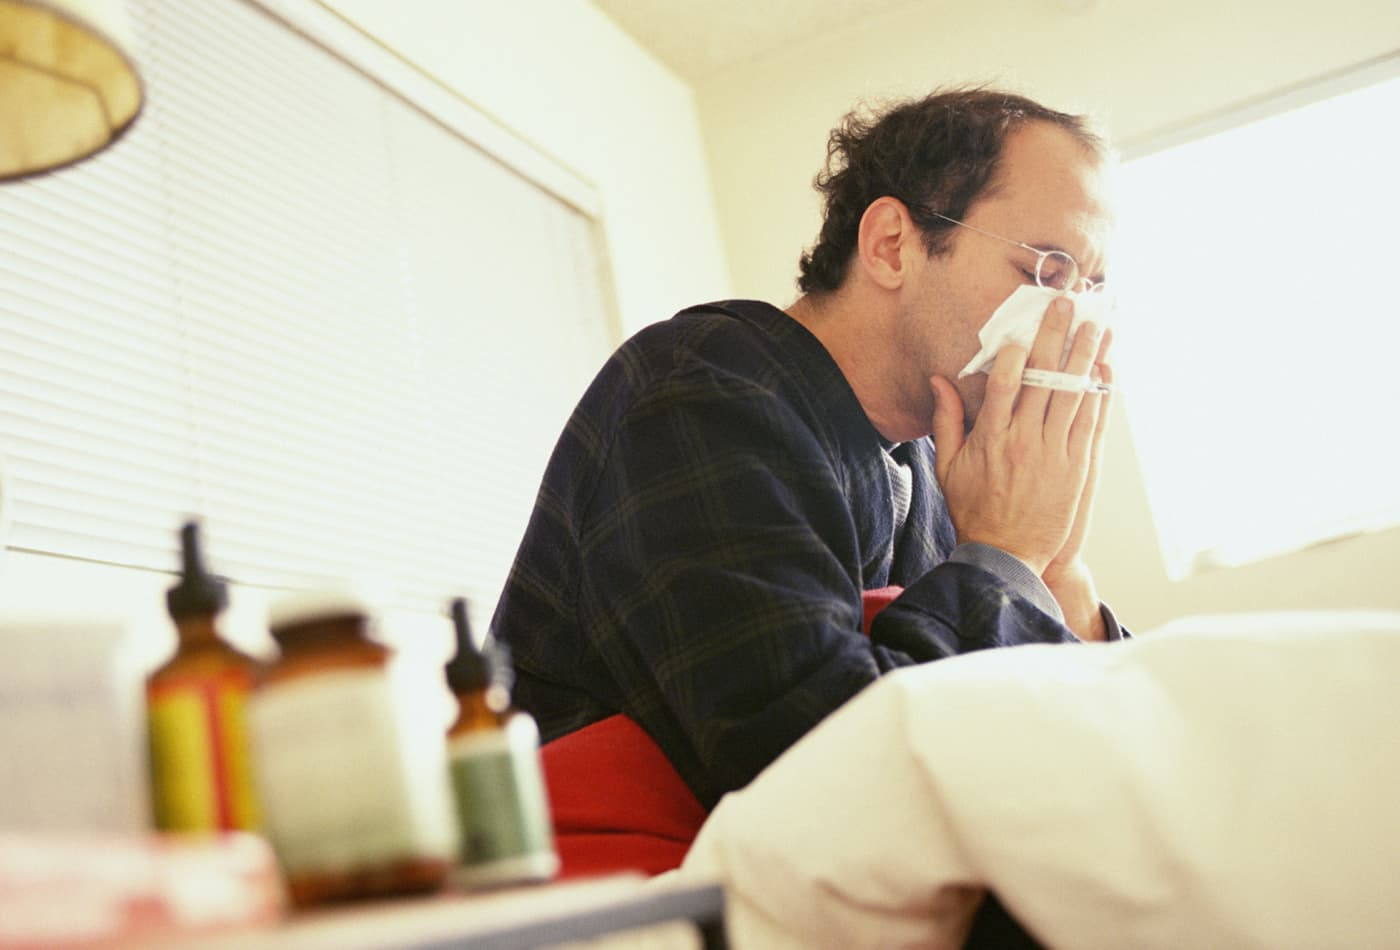 CDC says it's another severe flu season with up to 7.3 million people sick so far